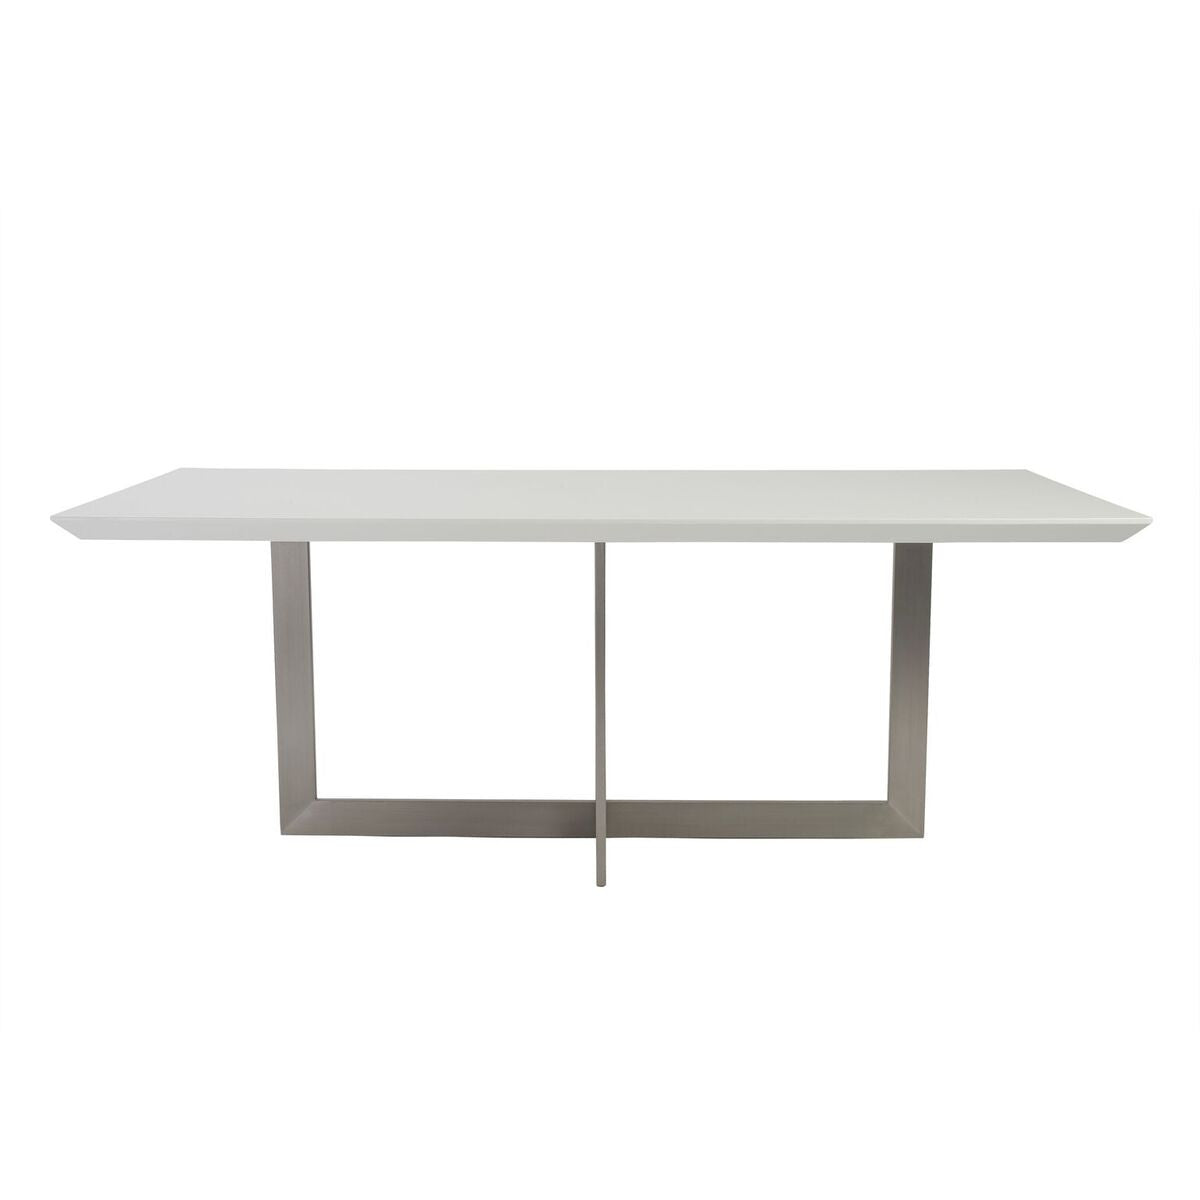 "White Lacquer & Brushed Stainless 79"" Conference / Meeeting Table"